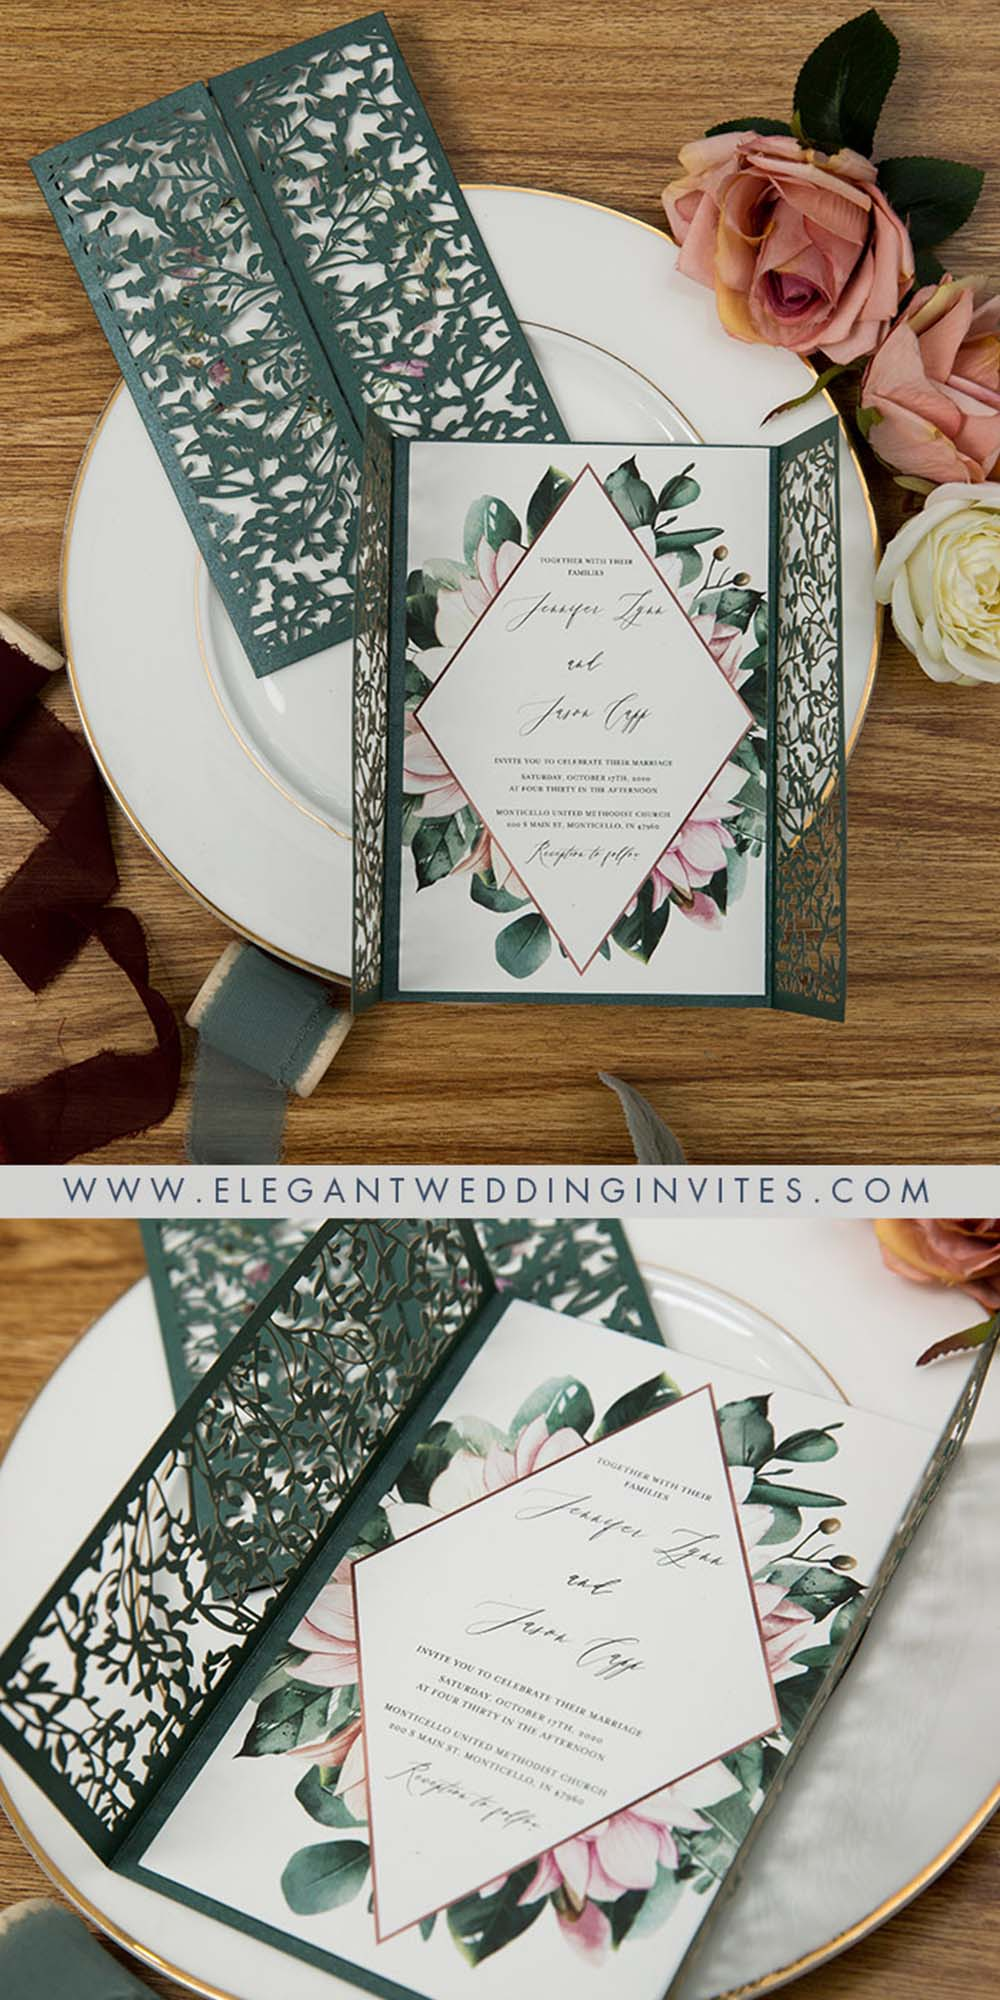 EWDM013 forest green and dusty rose floral laser cut two gate wedding invitations